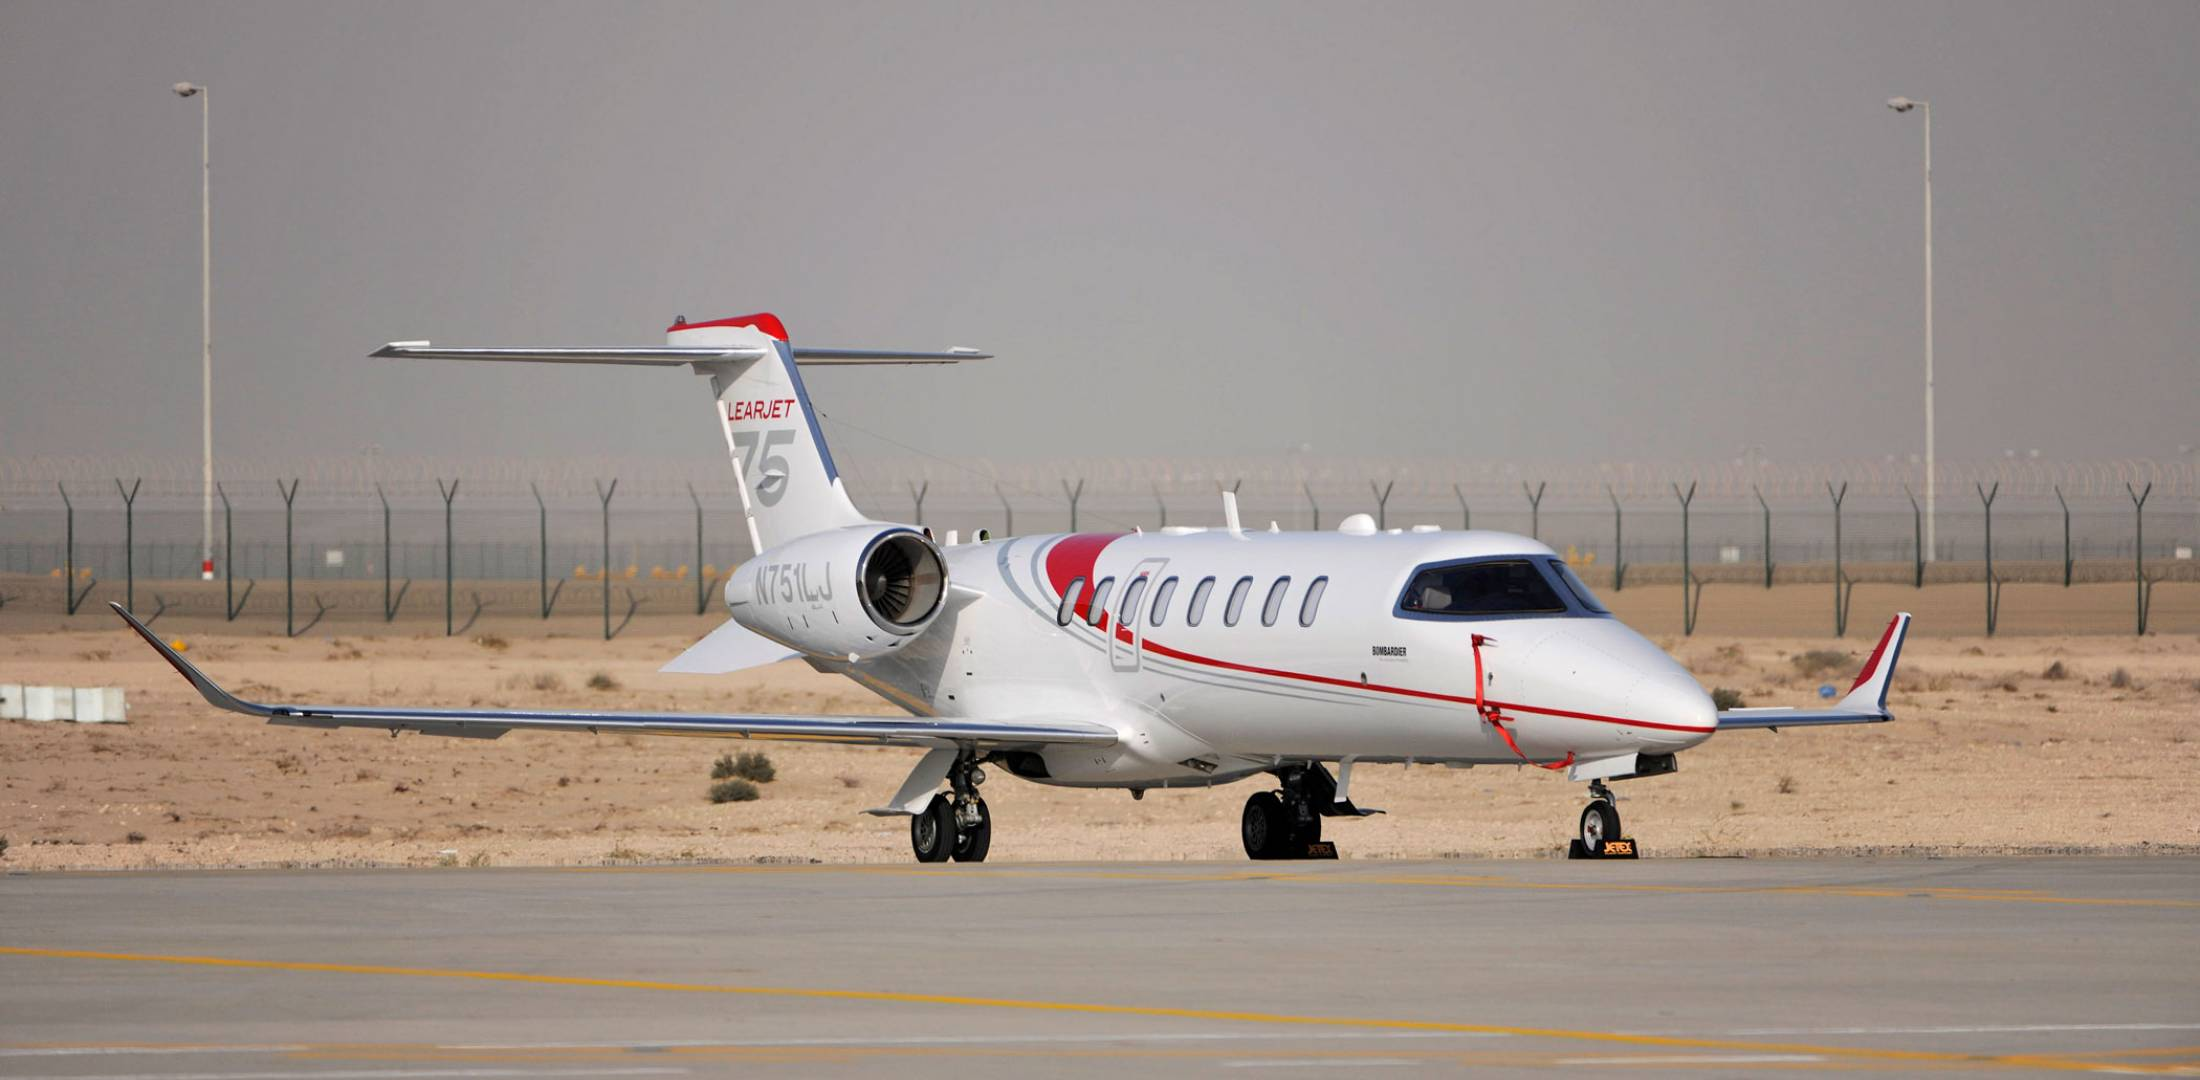 """Leading into the NBAA show, Bombardier had """"aggressive"""" marketing plans for its Learjet 75, as the company pondered whether the Learjet unit fit in with its long-term plans. Photo: Mark Wagner"""